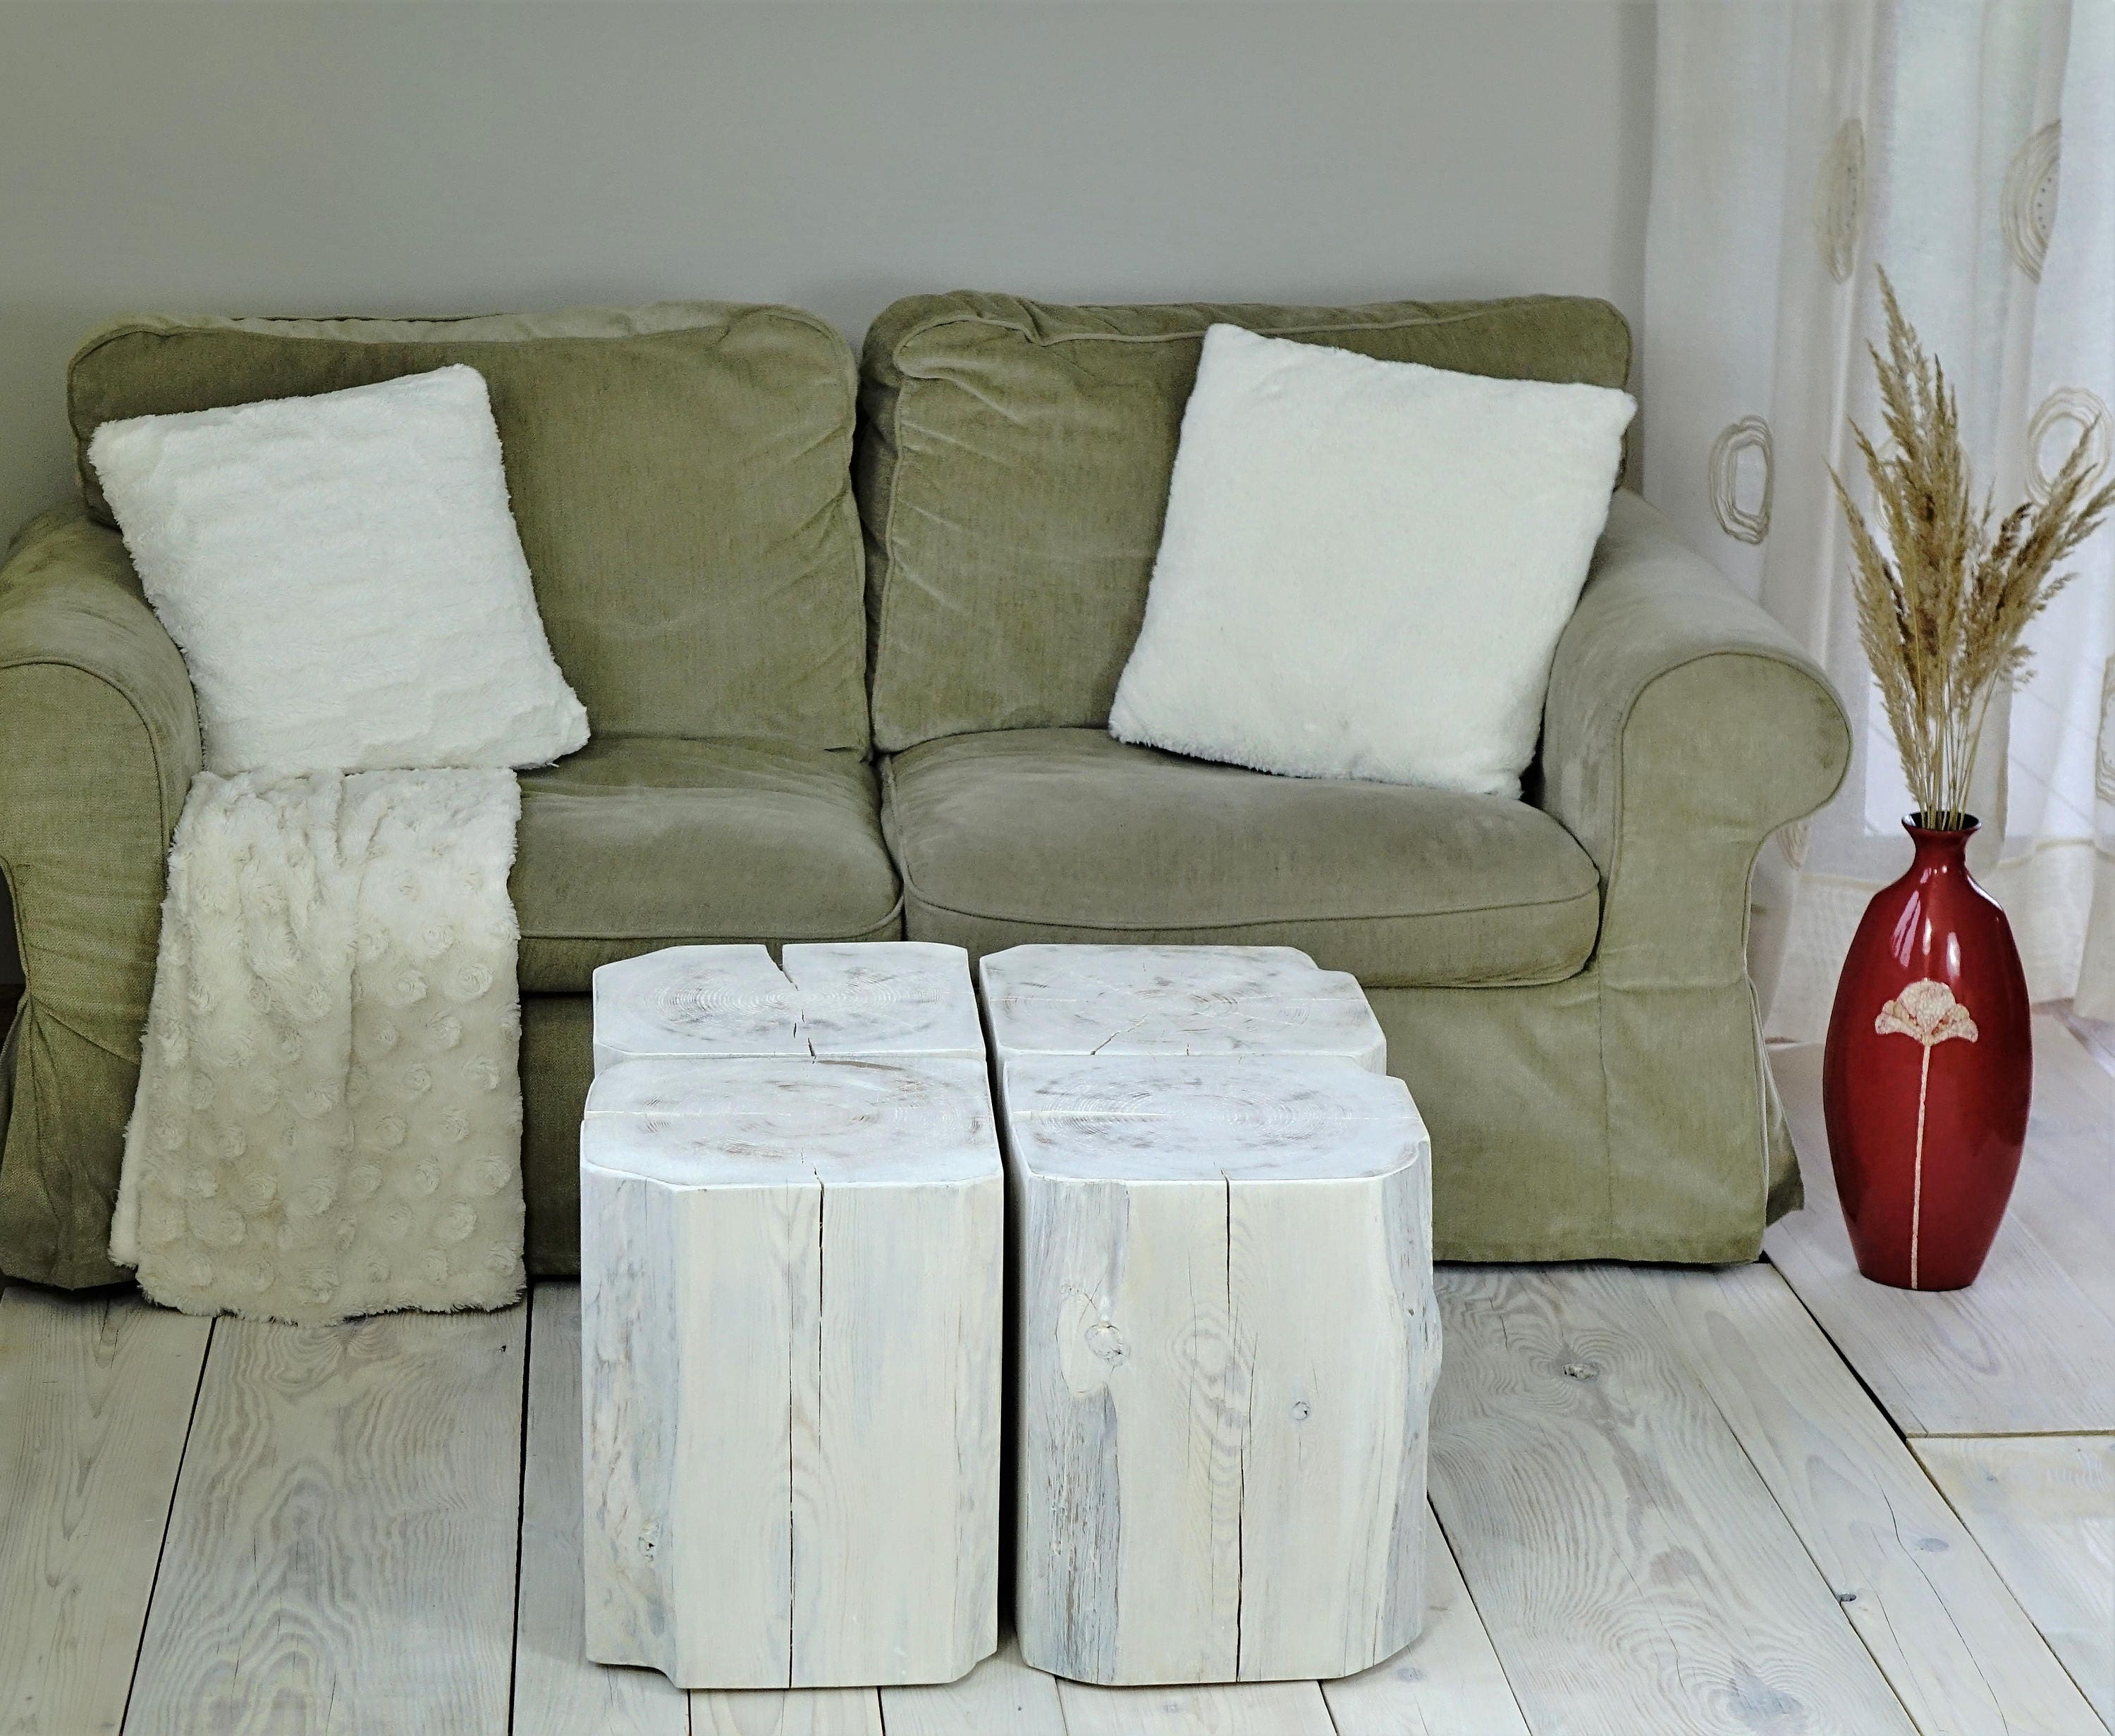 GroBartig White Wood Block Side Table Set Of Stump Square Blocks Weiss Couchtisch Holz  Baumblöcke Sgabello Ceppo Di Legno